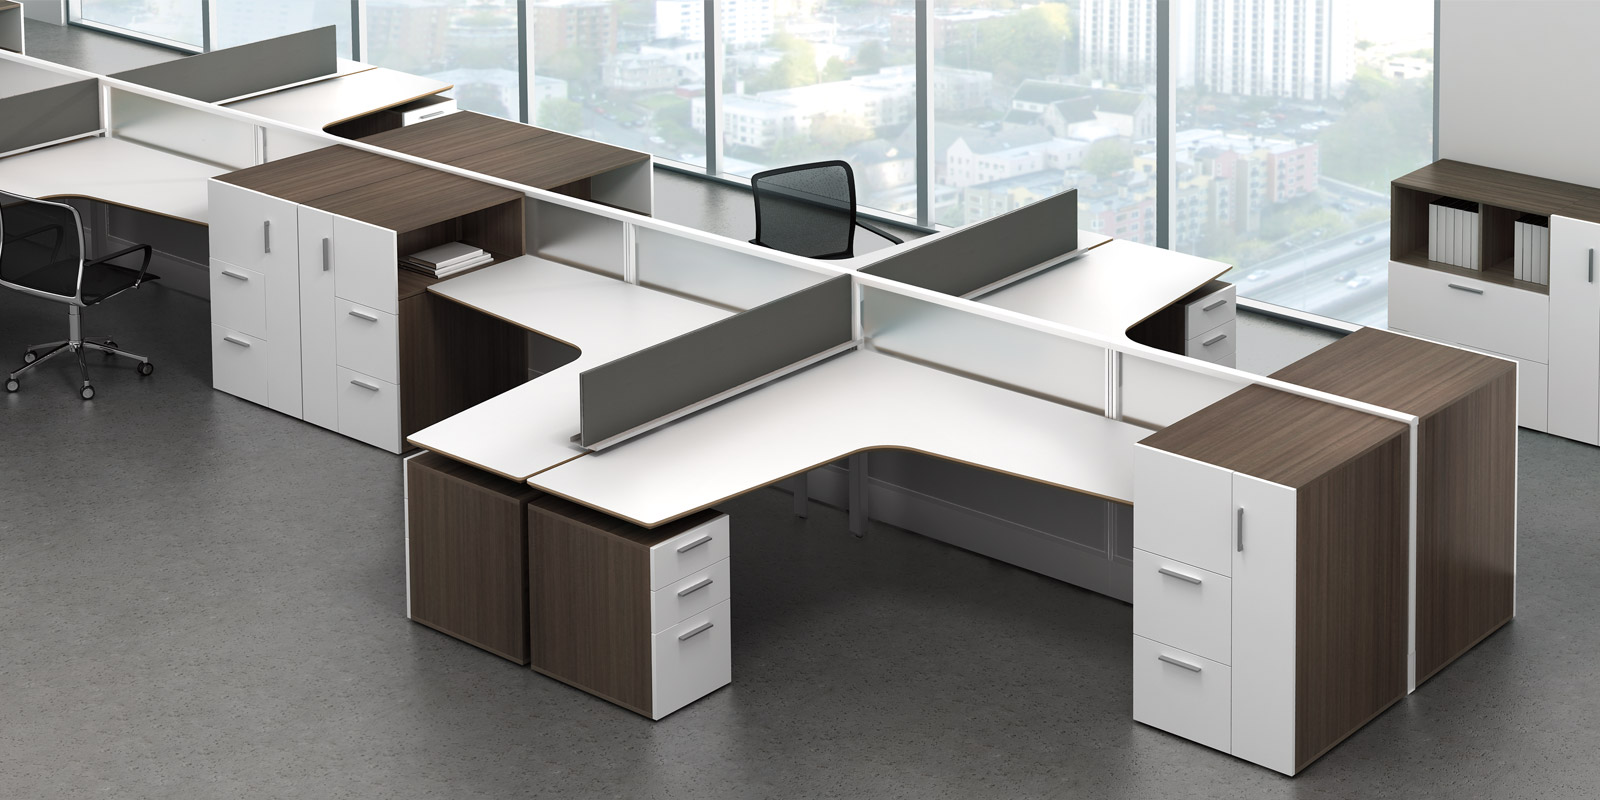 wow watson m2 office furniture enhance your open office designs. Black Bedroom Furniture Sets. Home Design Ideas